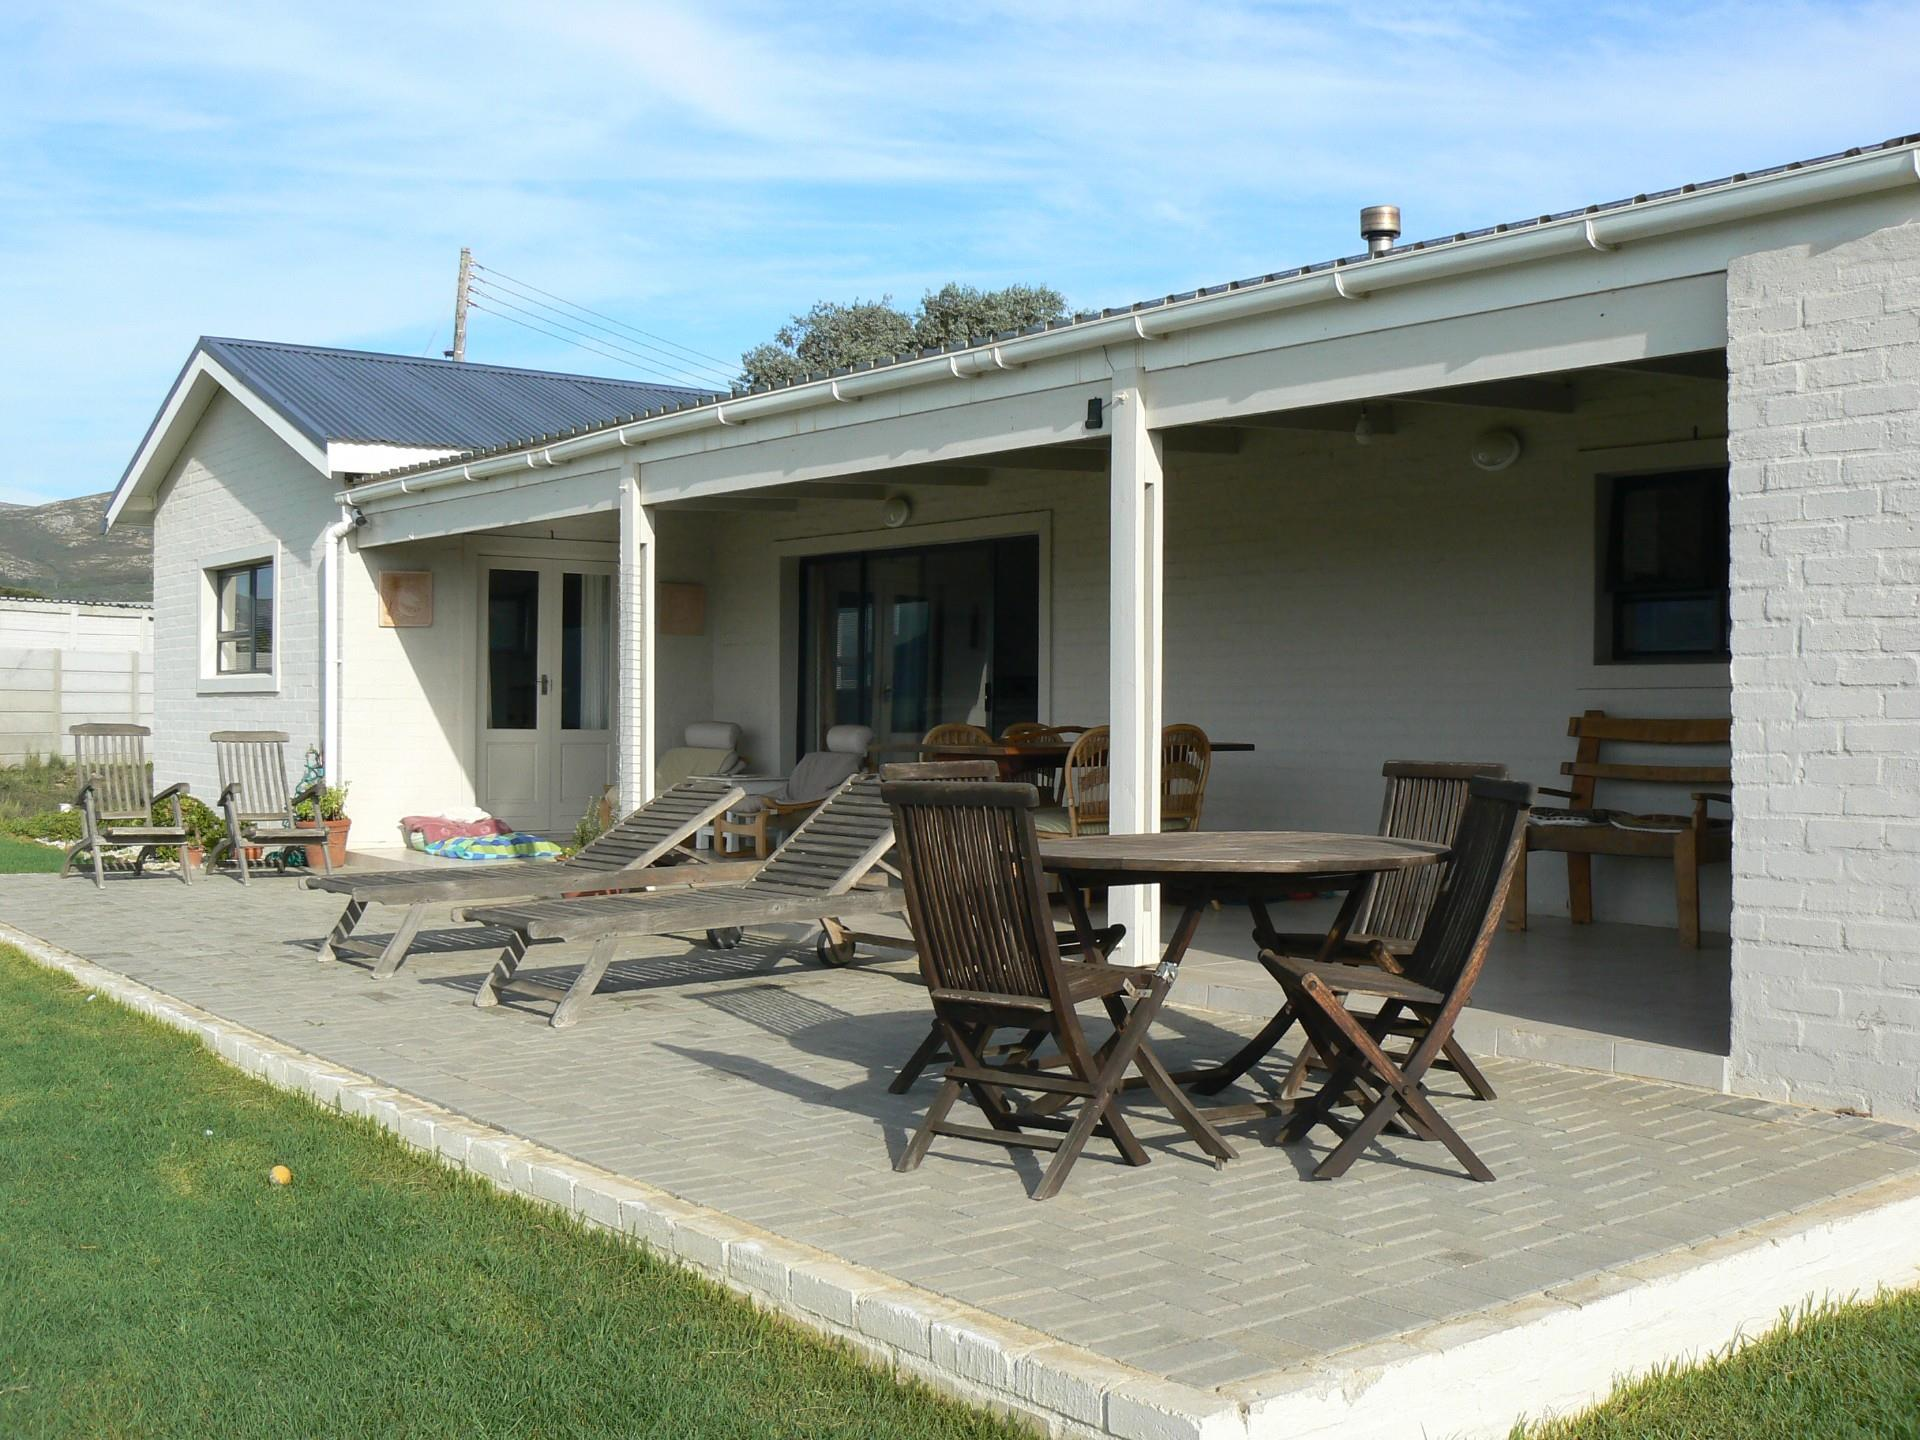 3 Bedroom House For Sale in Fisherhaven